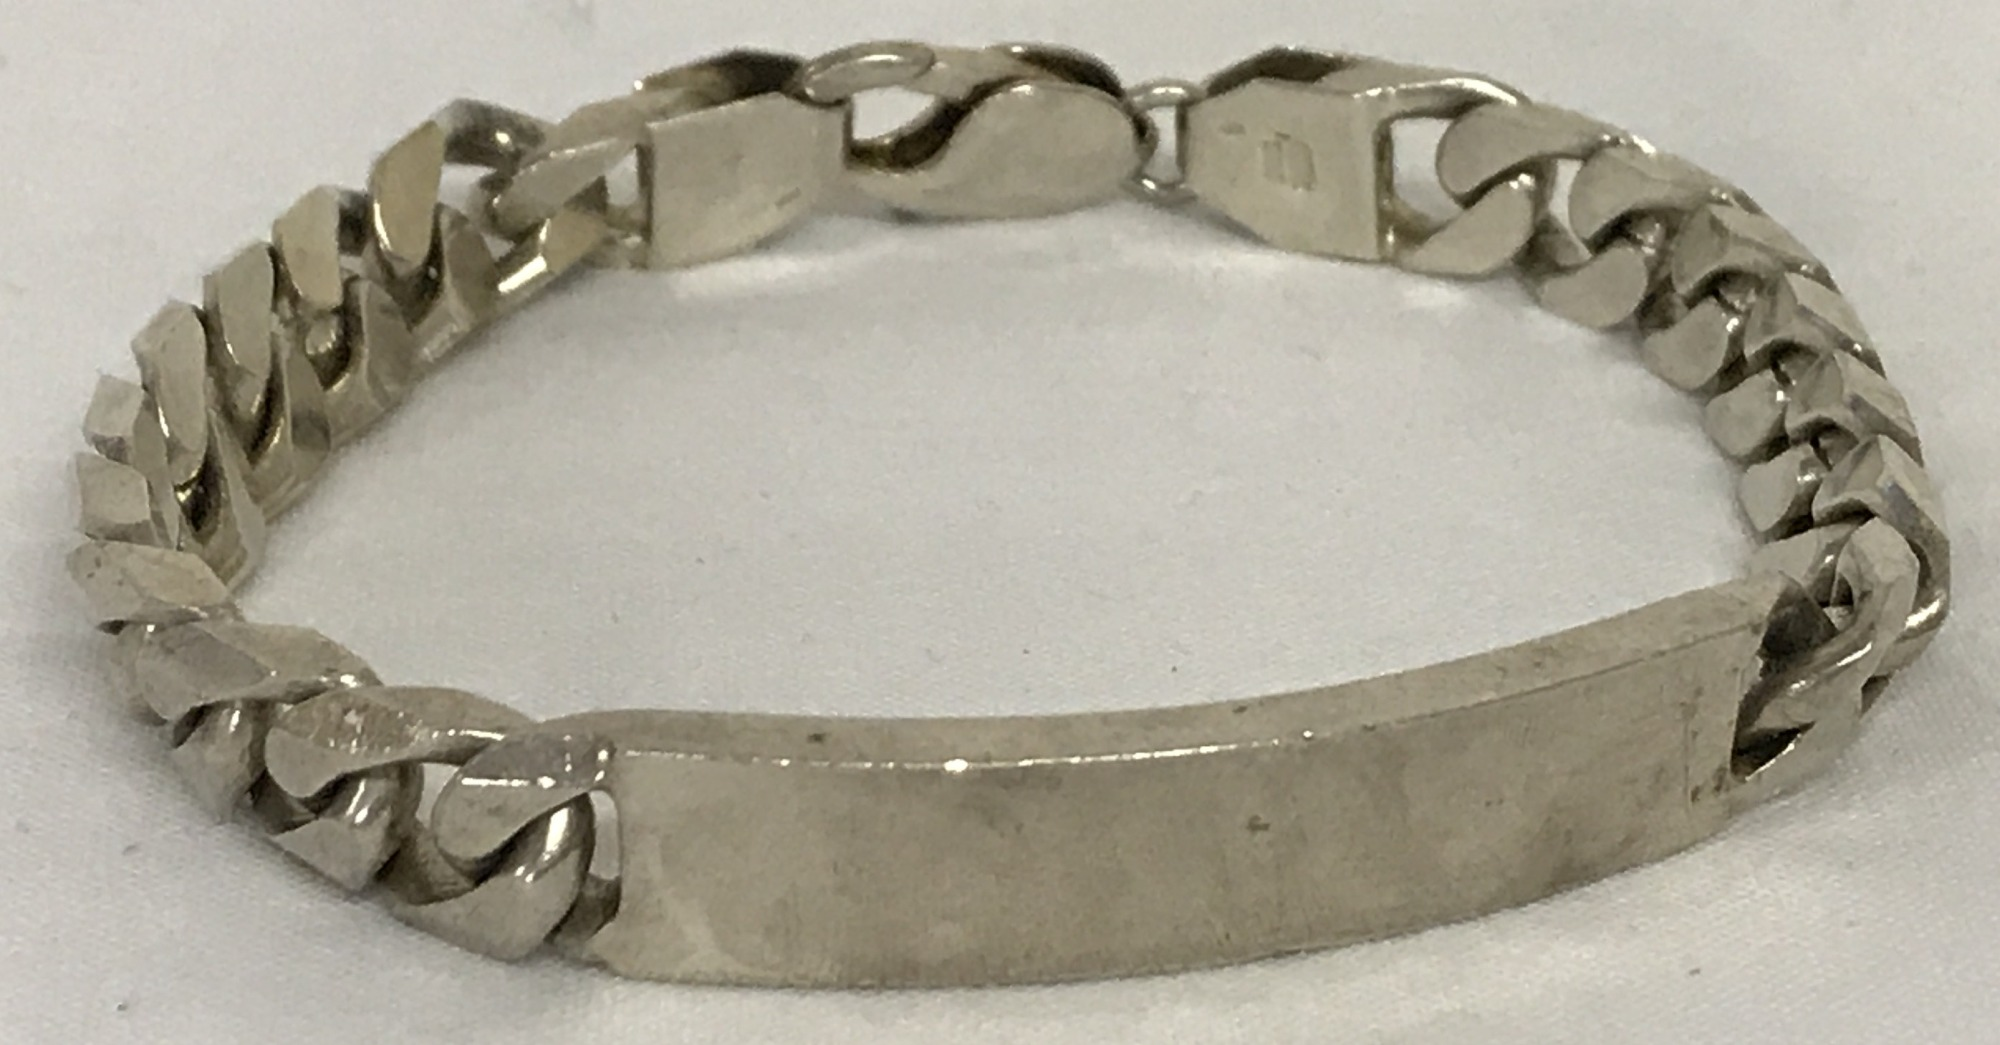 Lot 48 - A heavy silver curb chain identity bracelet.